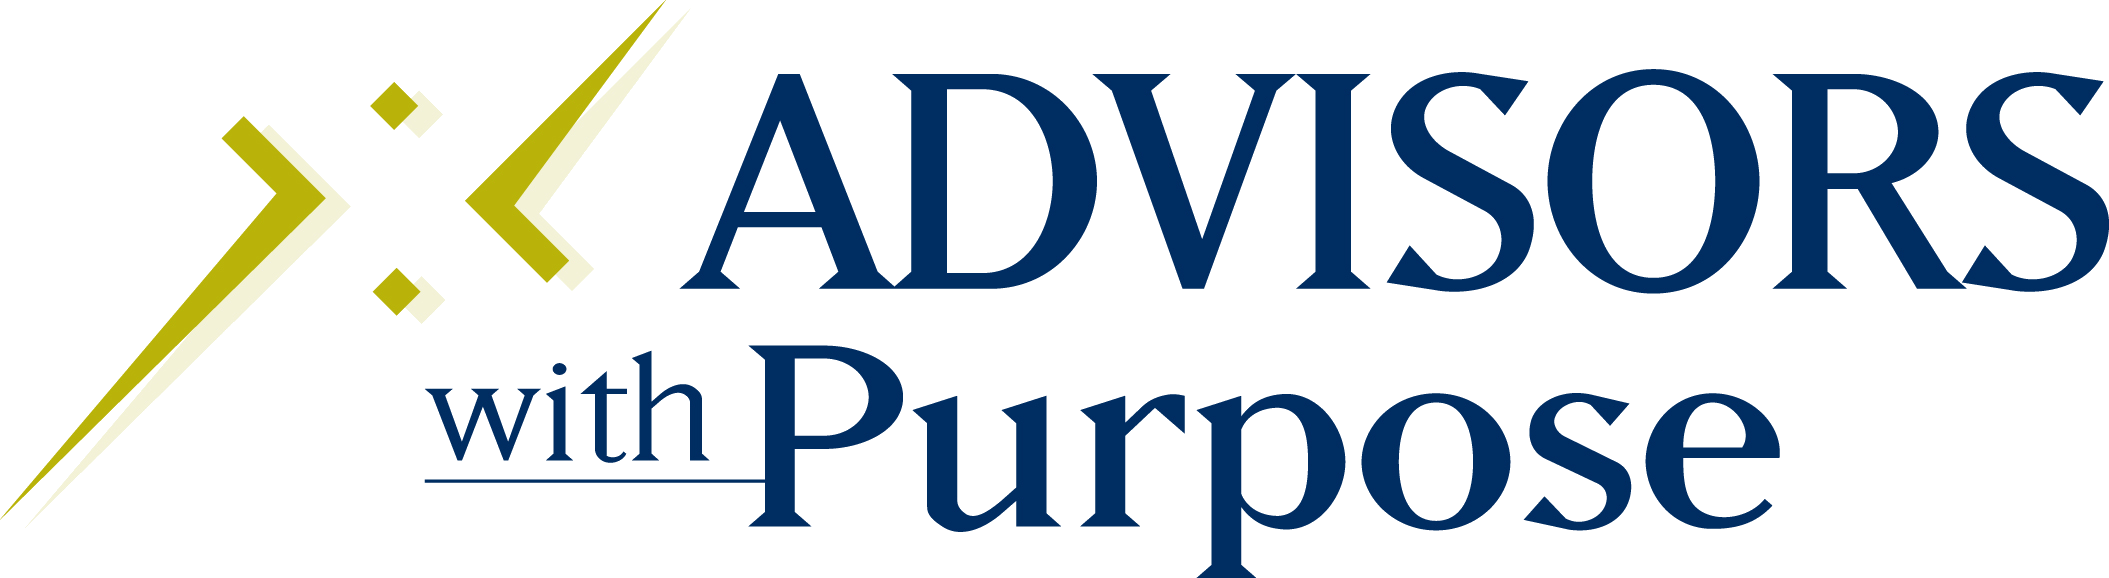 advisors-with-purpose-legacy-giving